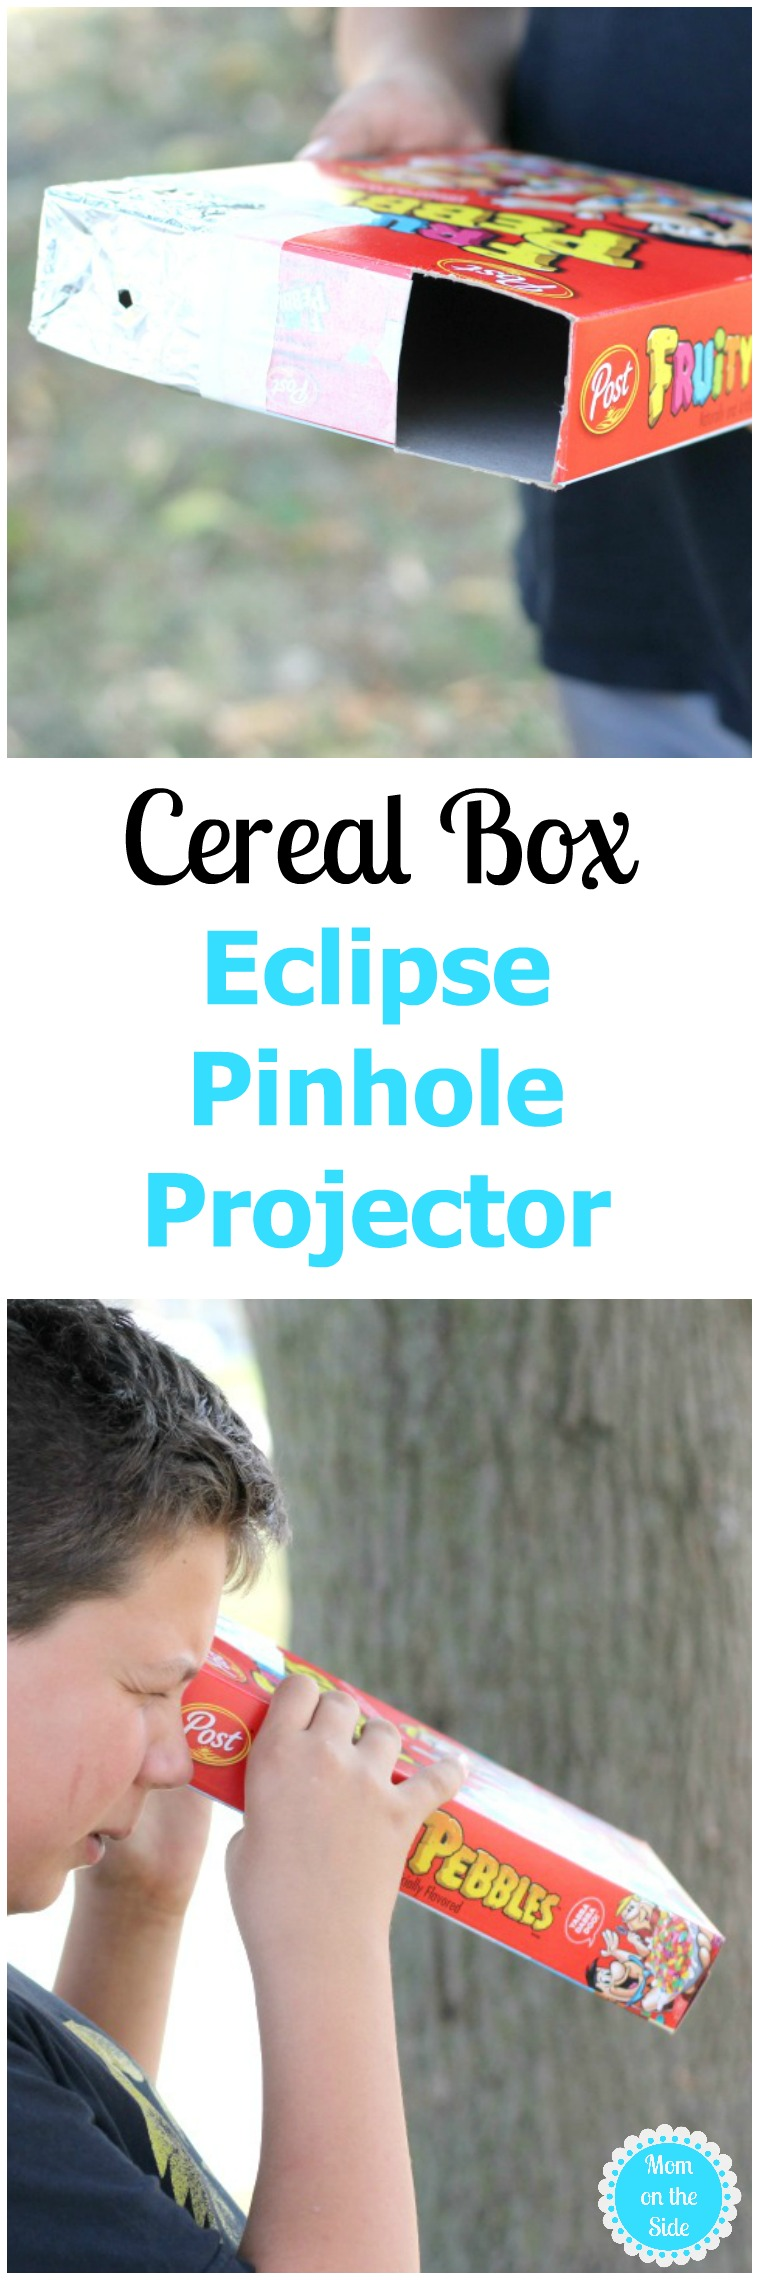 Cereal Box Eclipse Pinhole Projector DIY